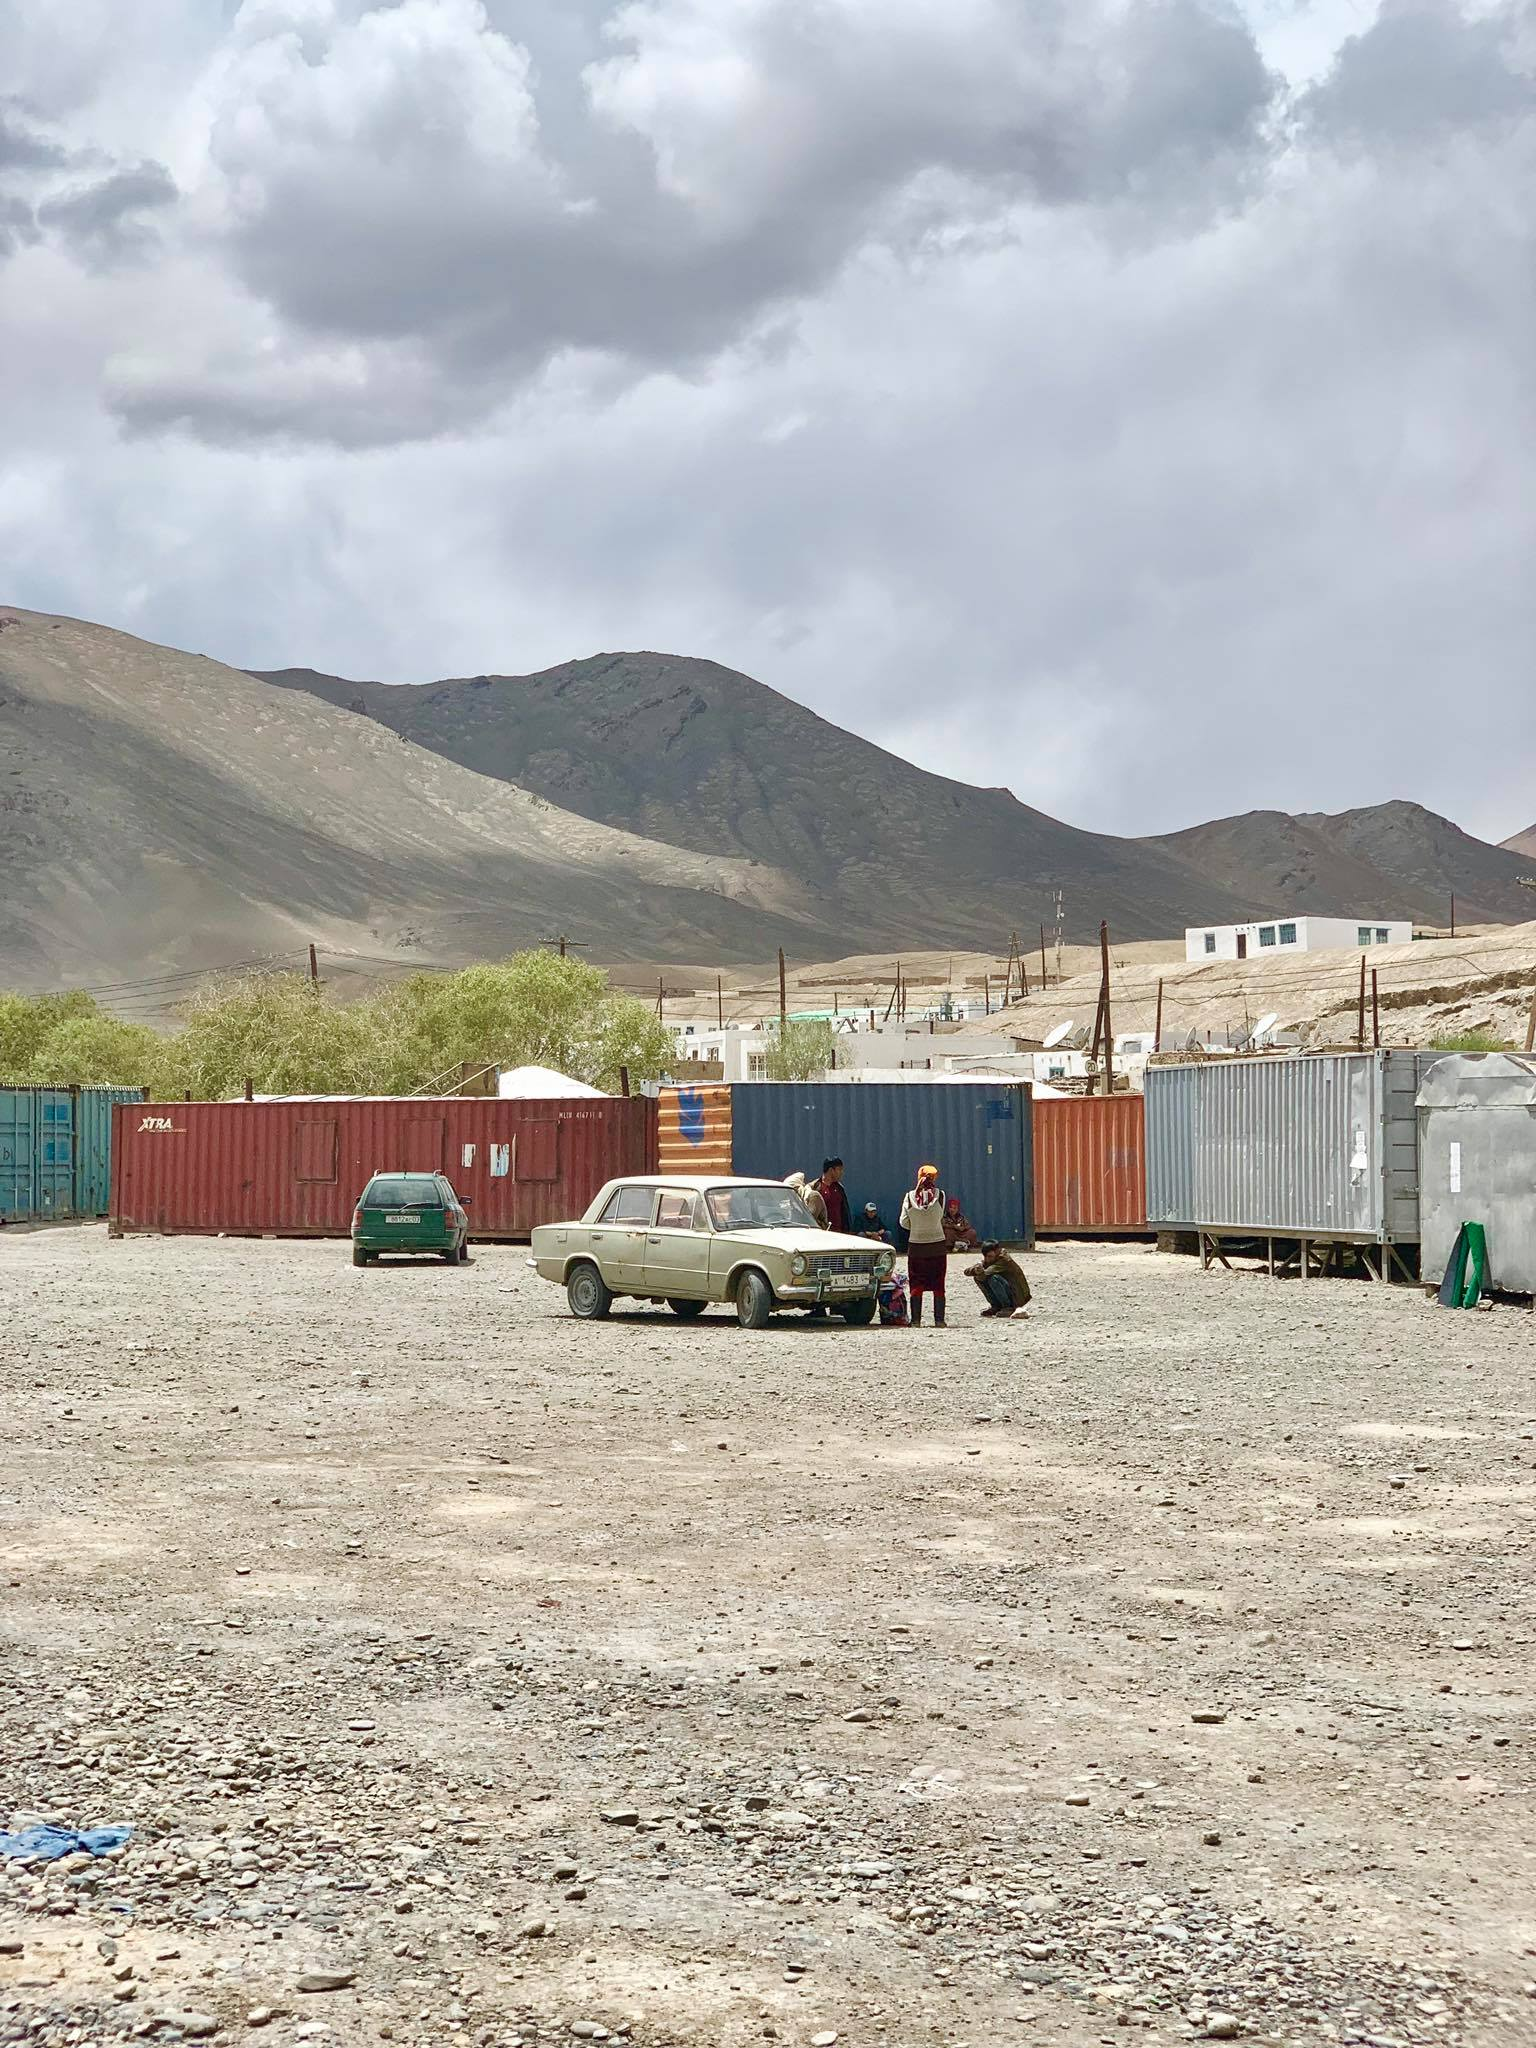 Kach Solo Travels in 2019 Our unexpected last stop during our Pamir Highway Roadtrip13.jpg